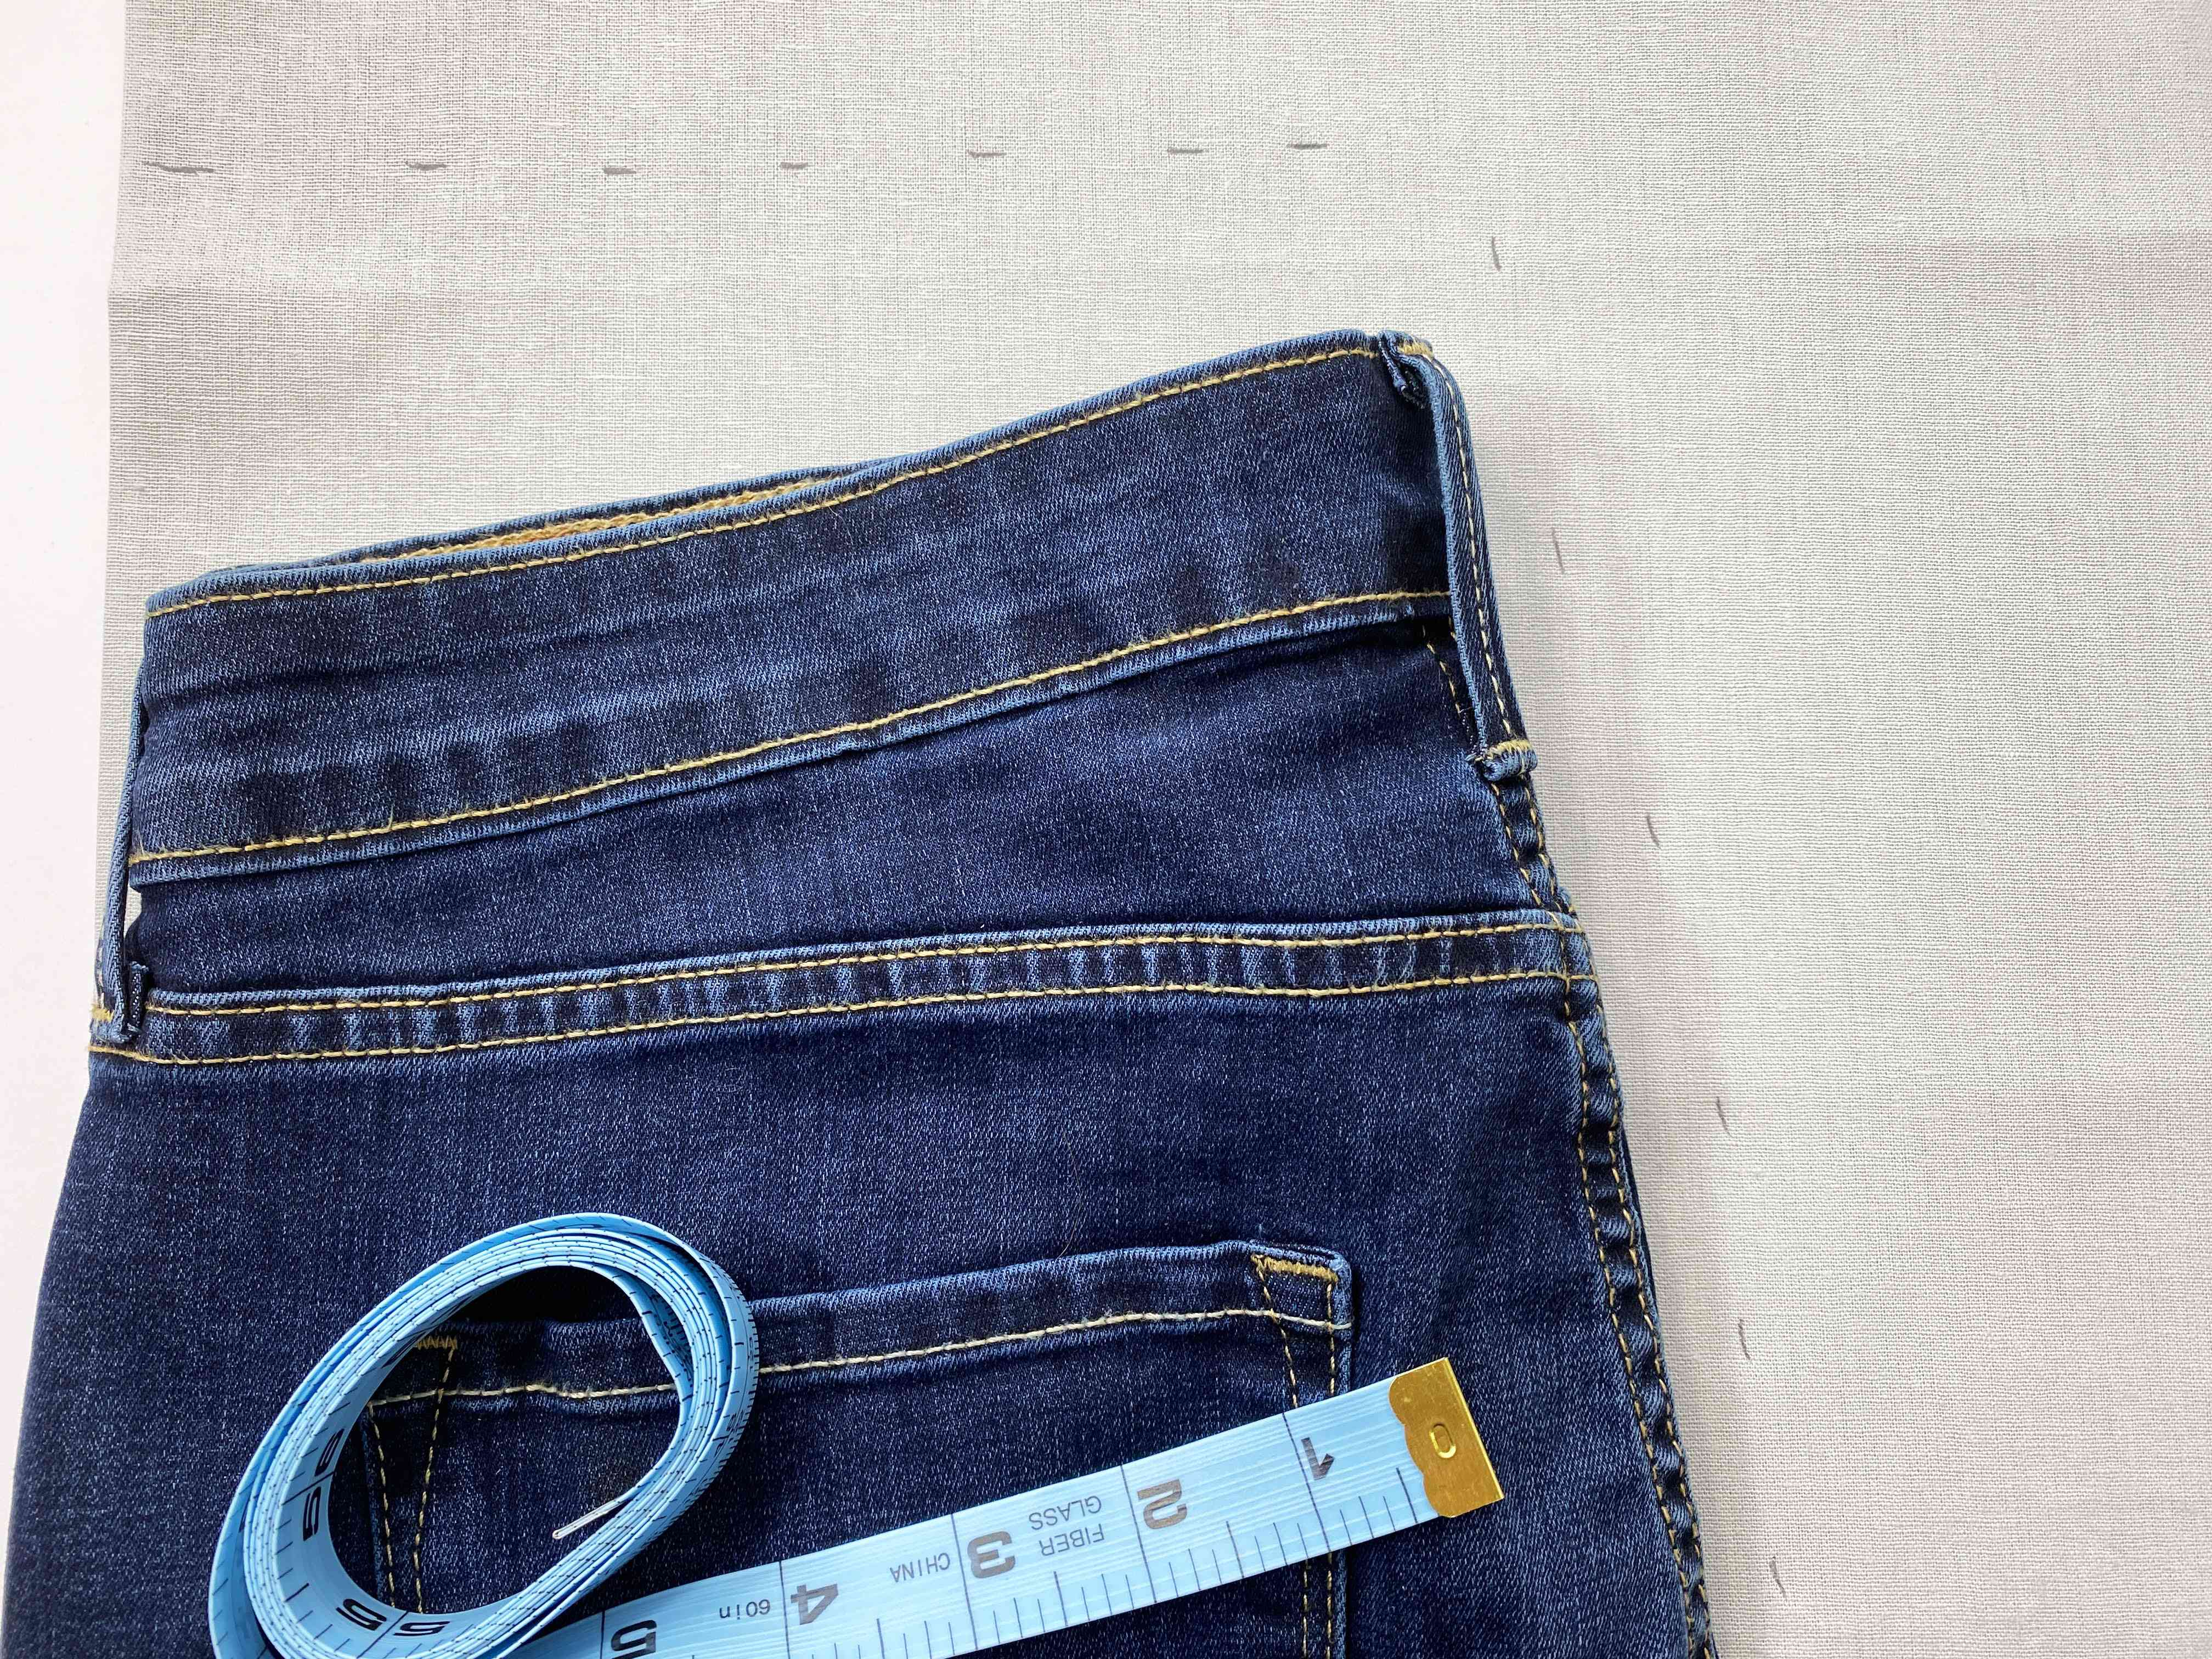 Jeans, tape measure, and fabric